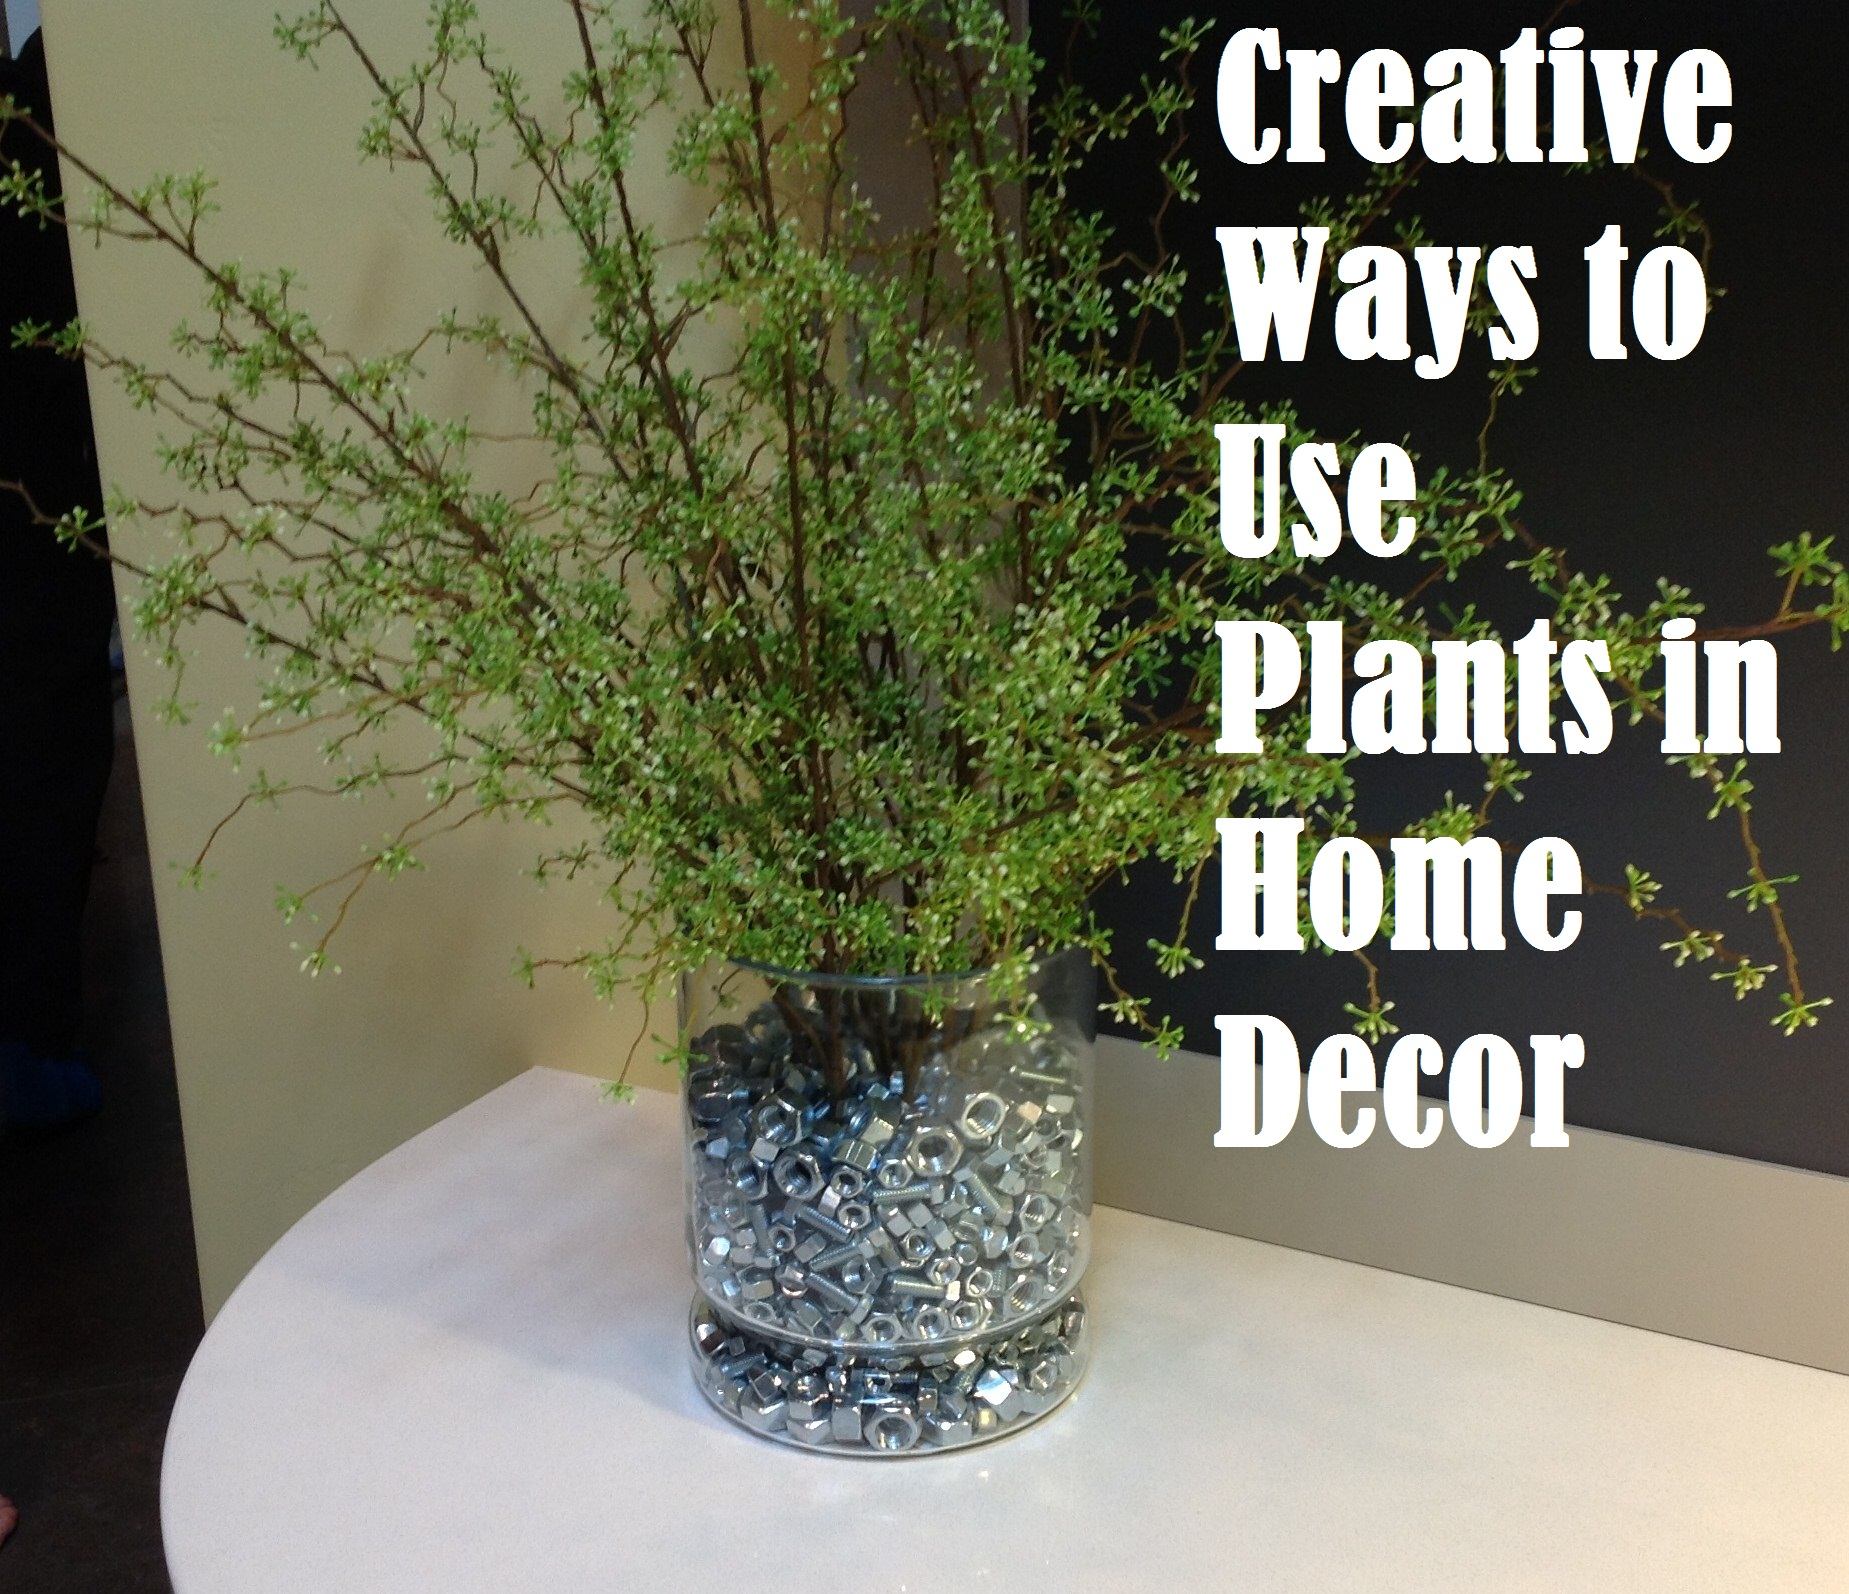 creative ways to use plants in home decor fabulous home ideas